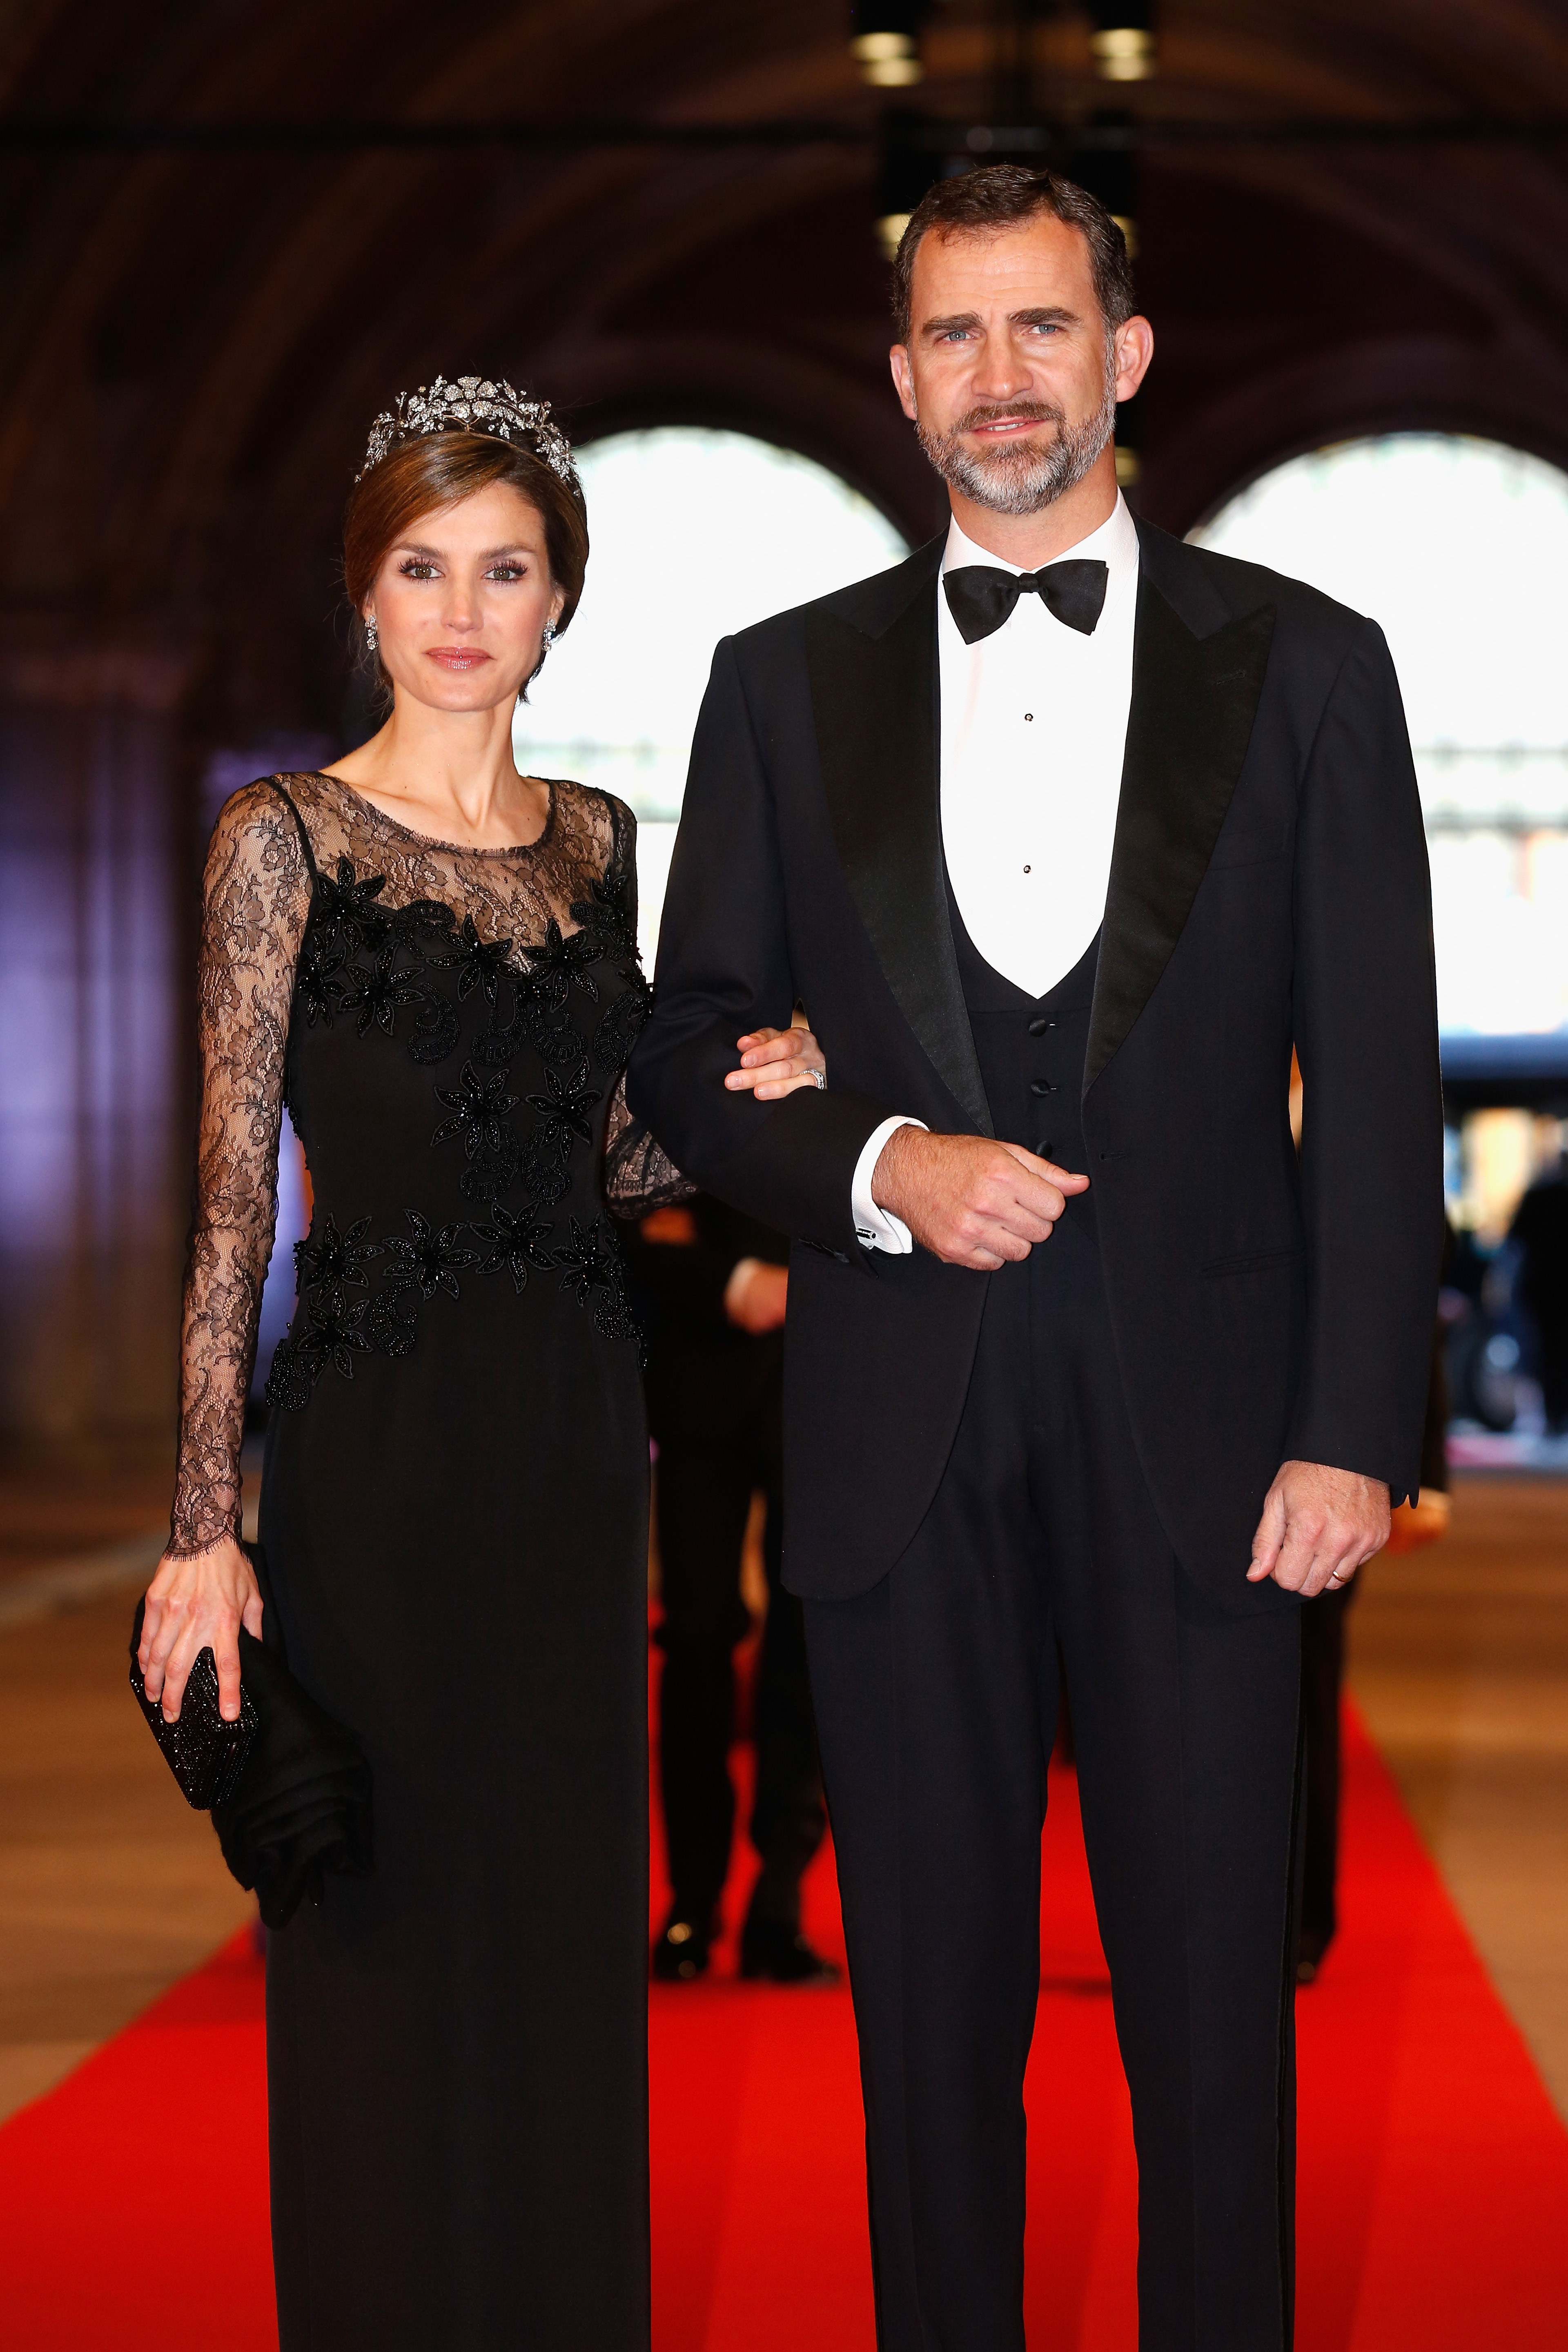 Princess Letizia and Prince Felipe attend a dinner hosted by Queen Beatrix of The Netherlands ahead of her abdication at Rijksmuseum on April 29, 2013 in Amsterdam.